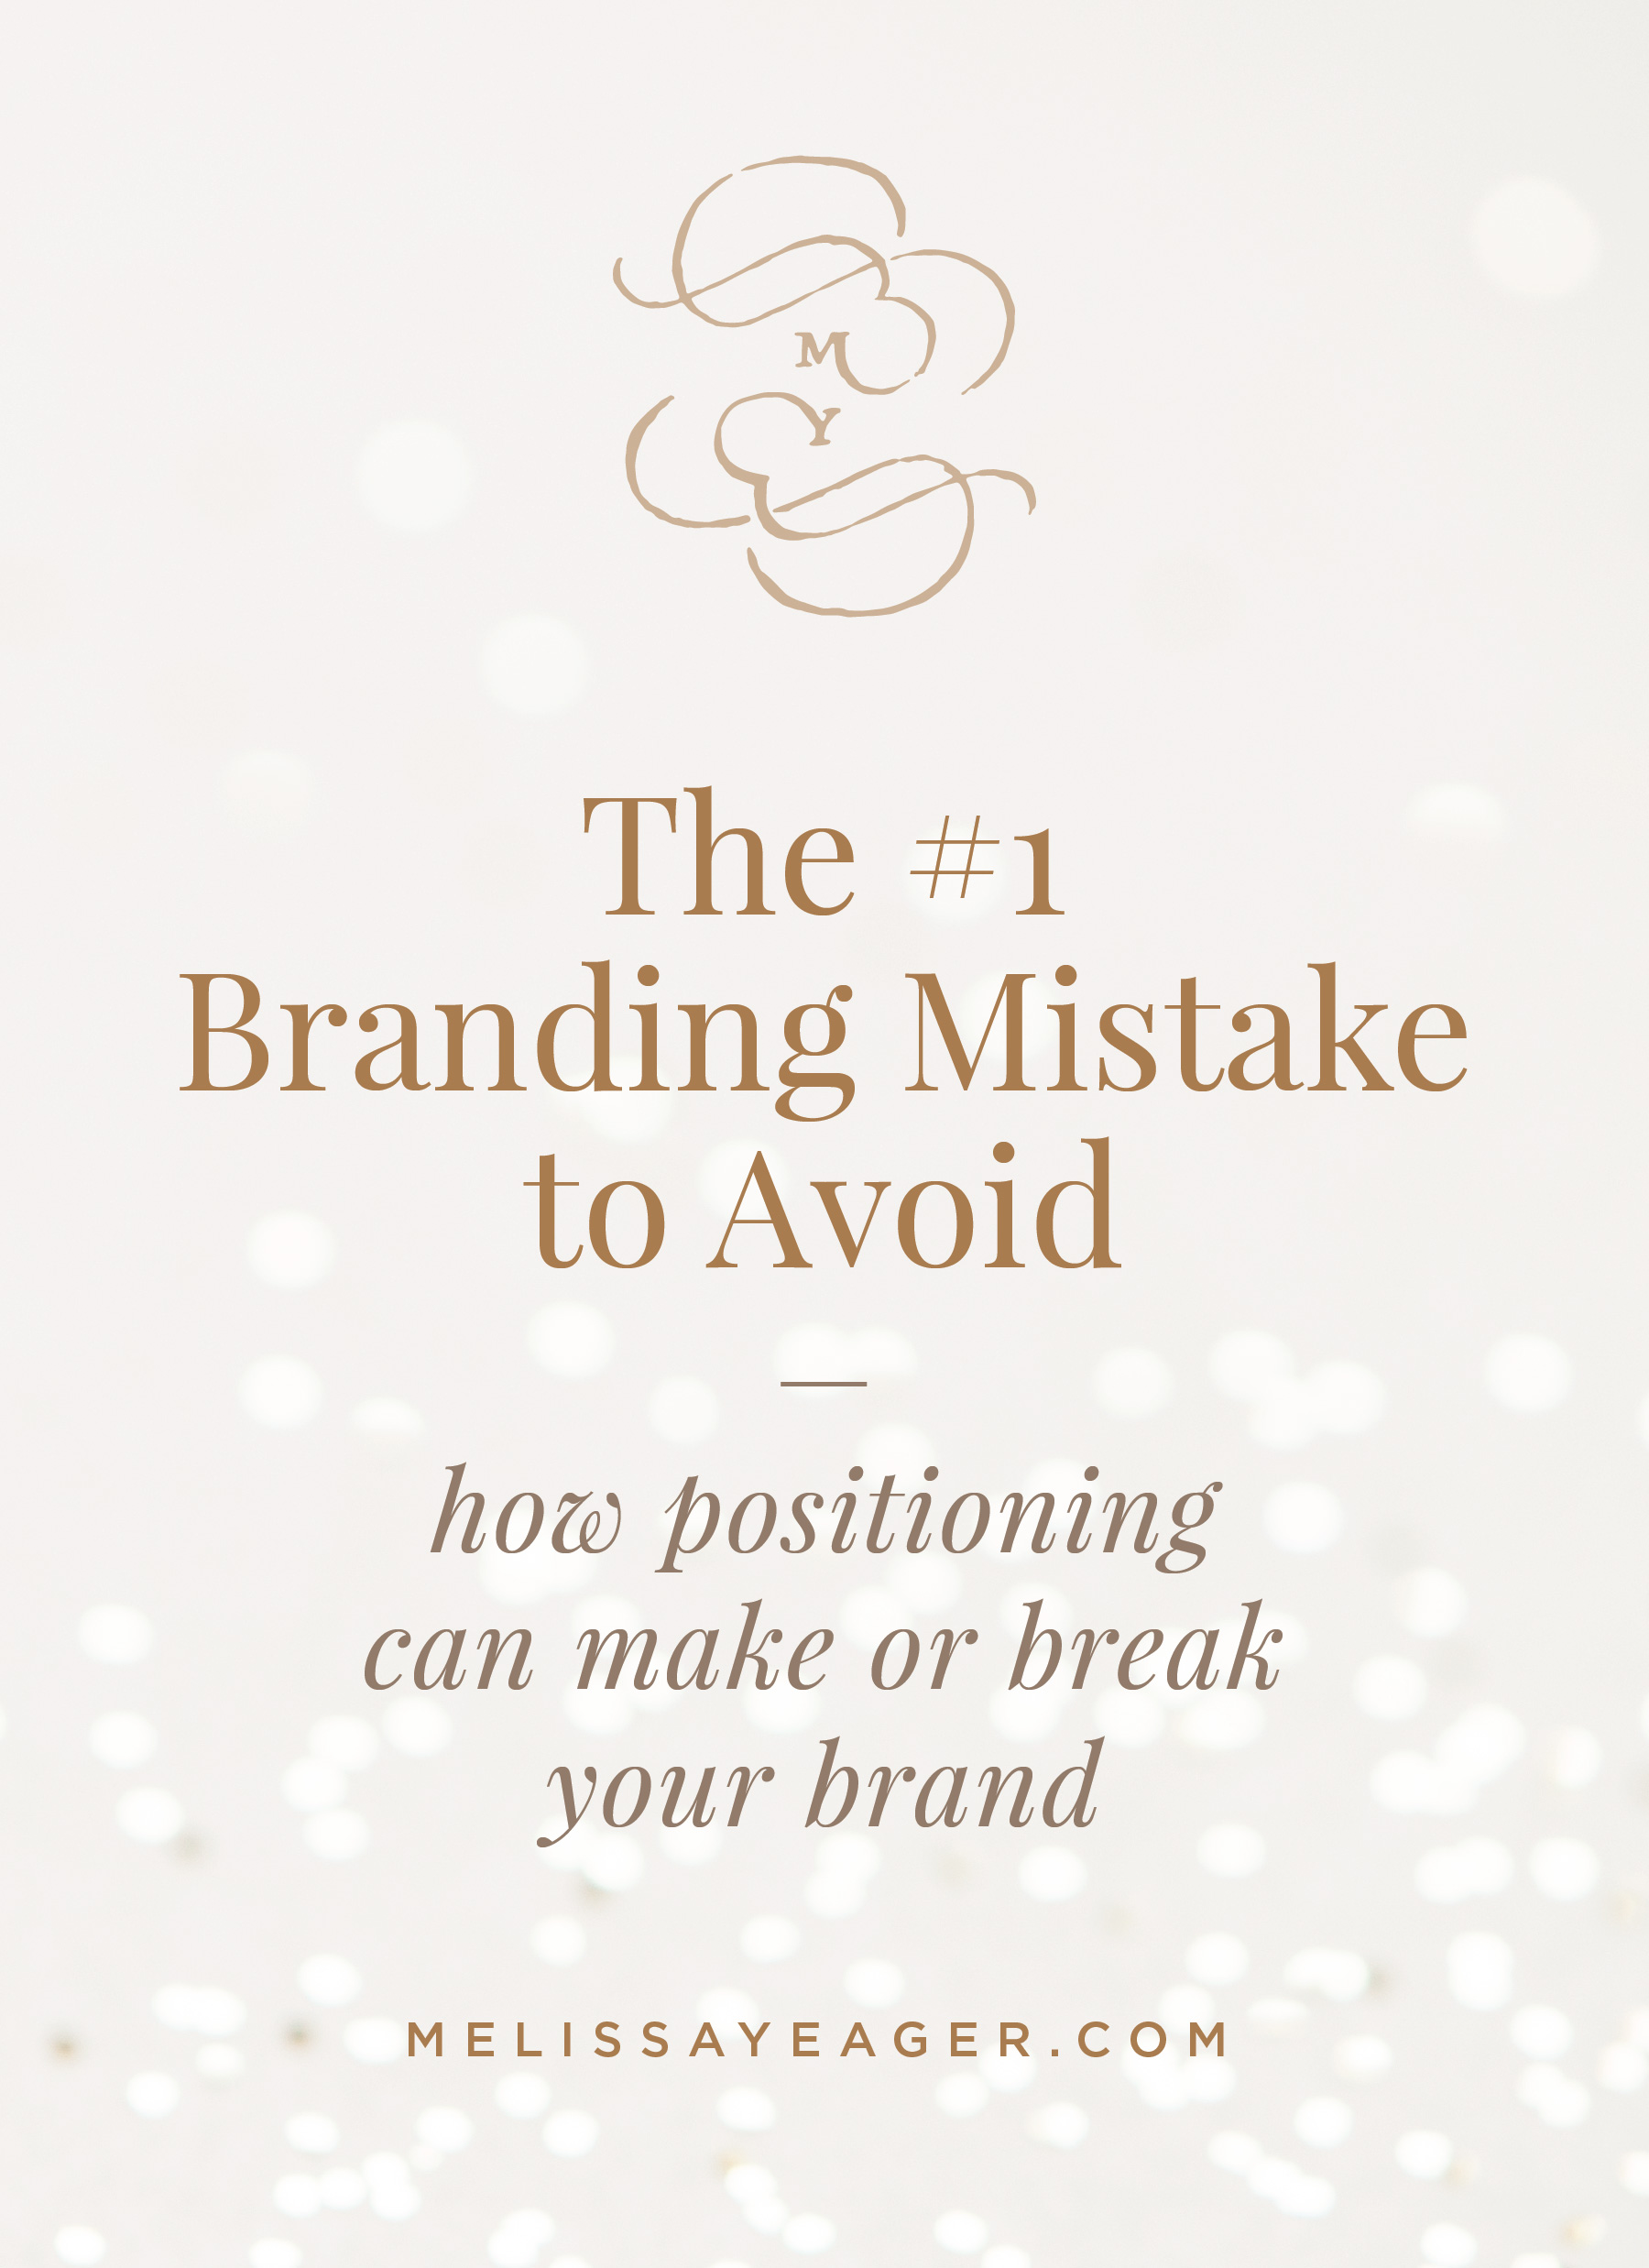 The #1 Branding Mistake to Avoid - how positioning can make or break your brand